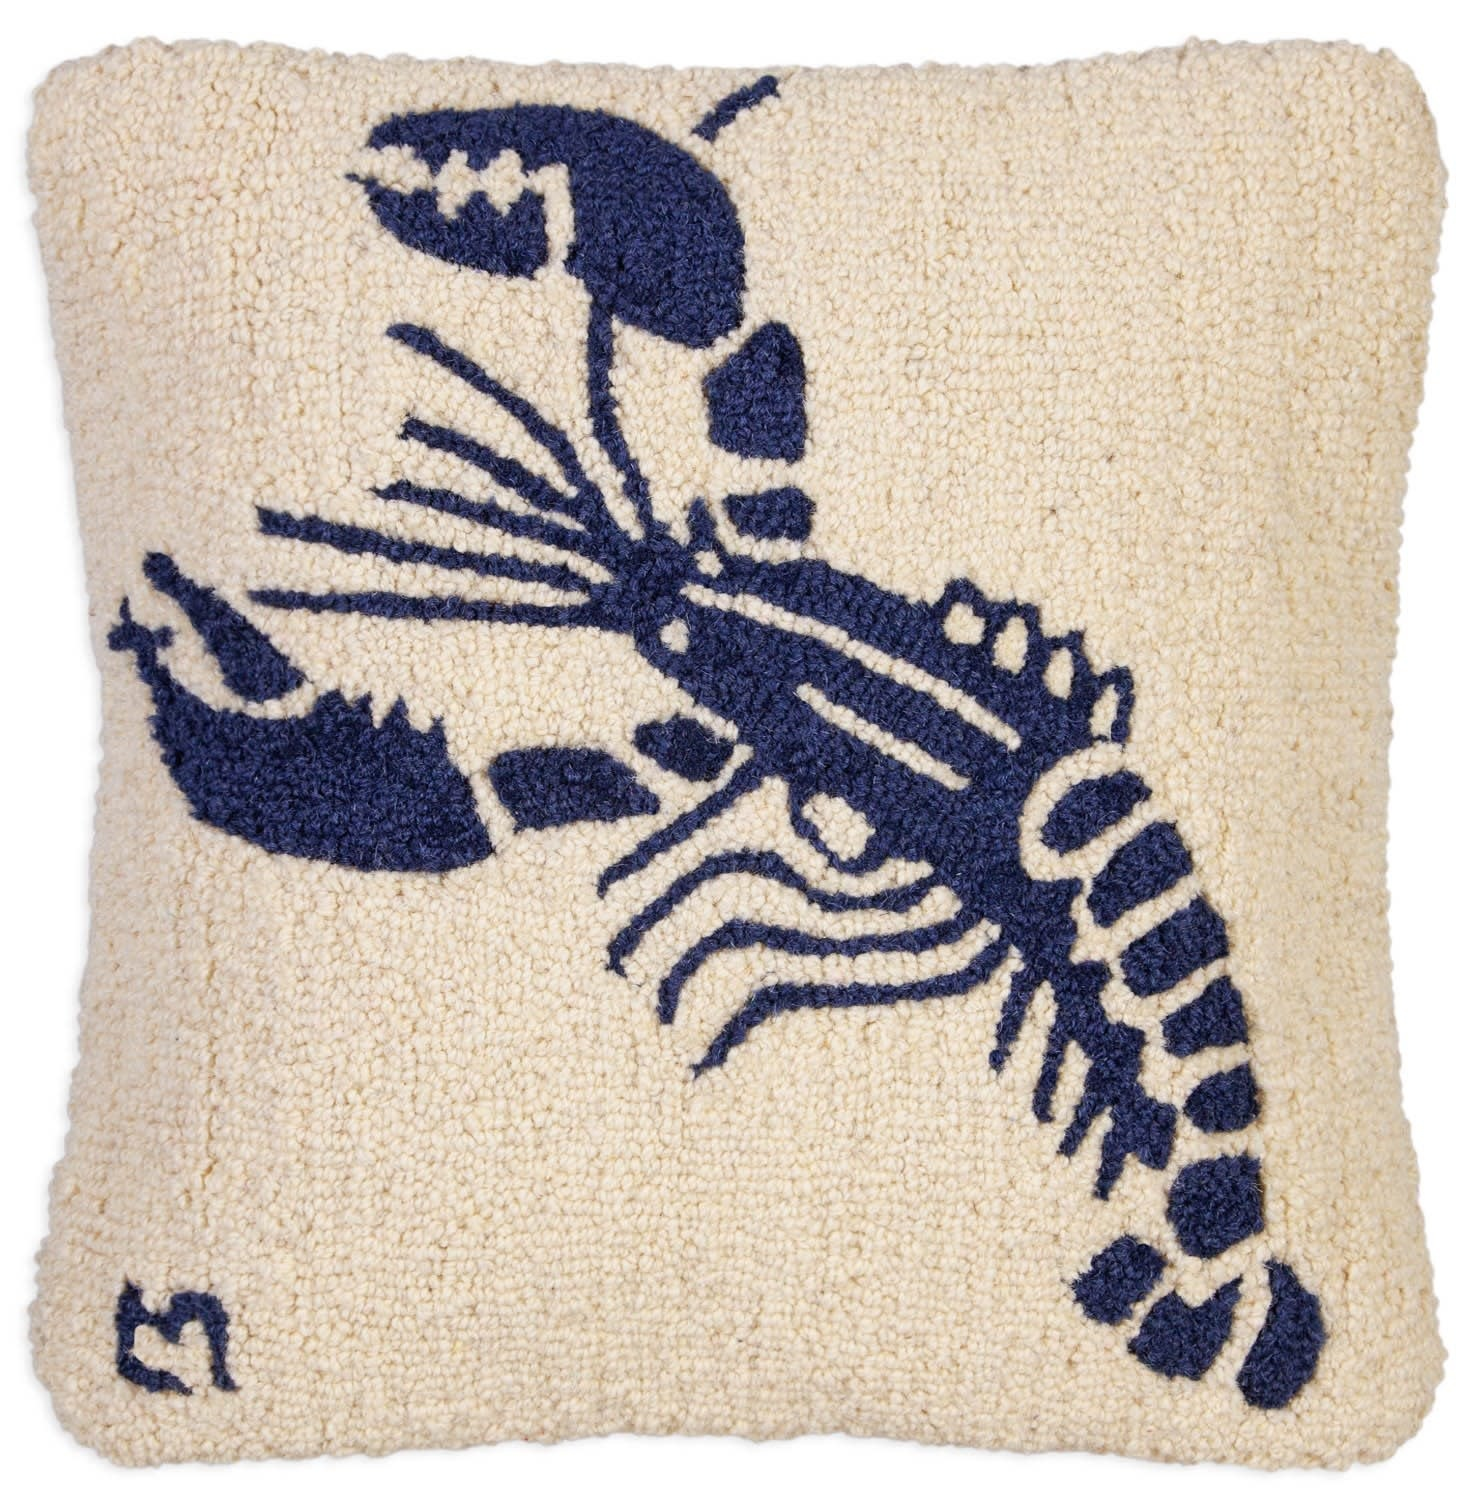 Blue Lobster on White 18x18 Hooked Pillow